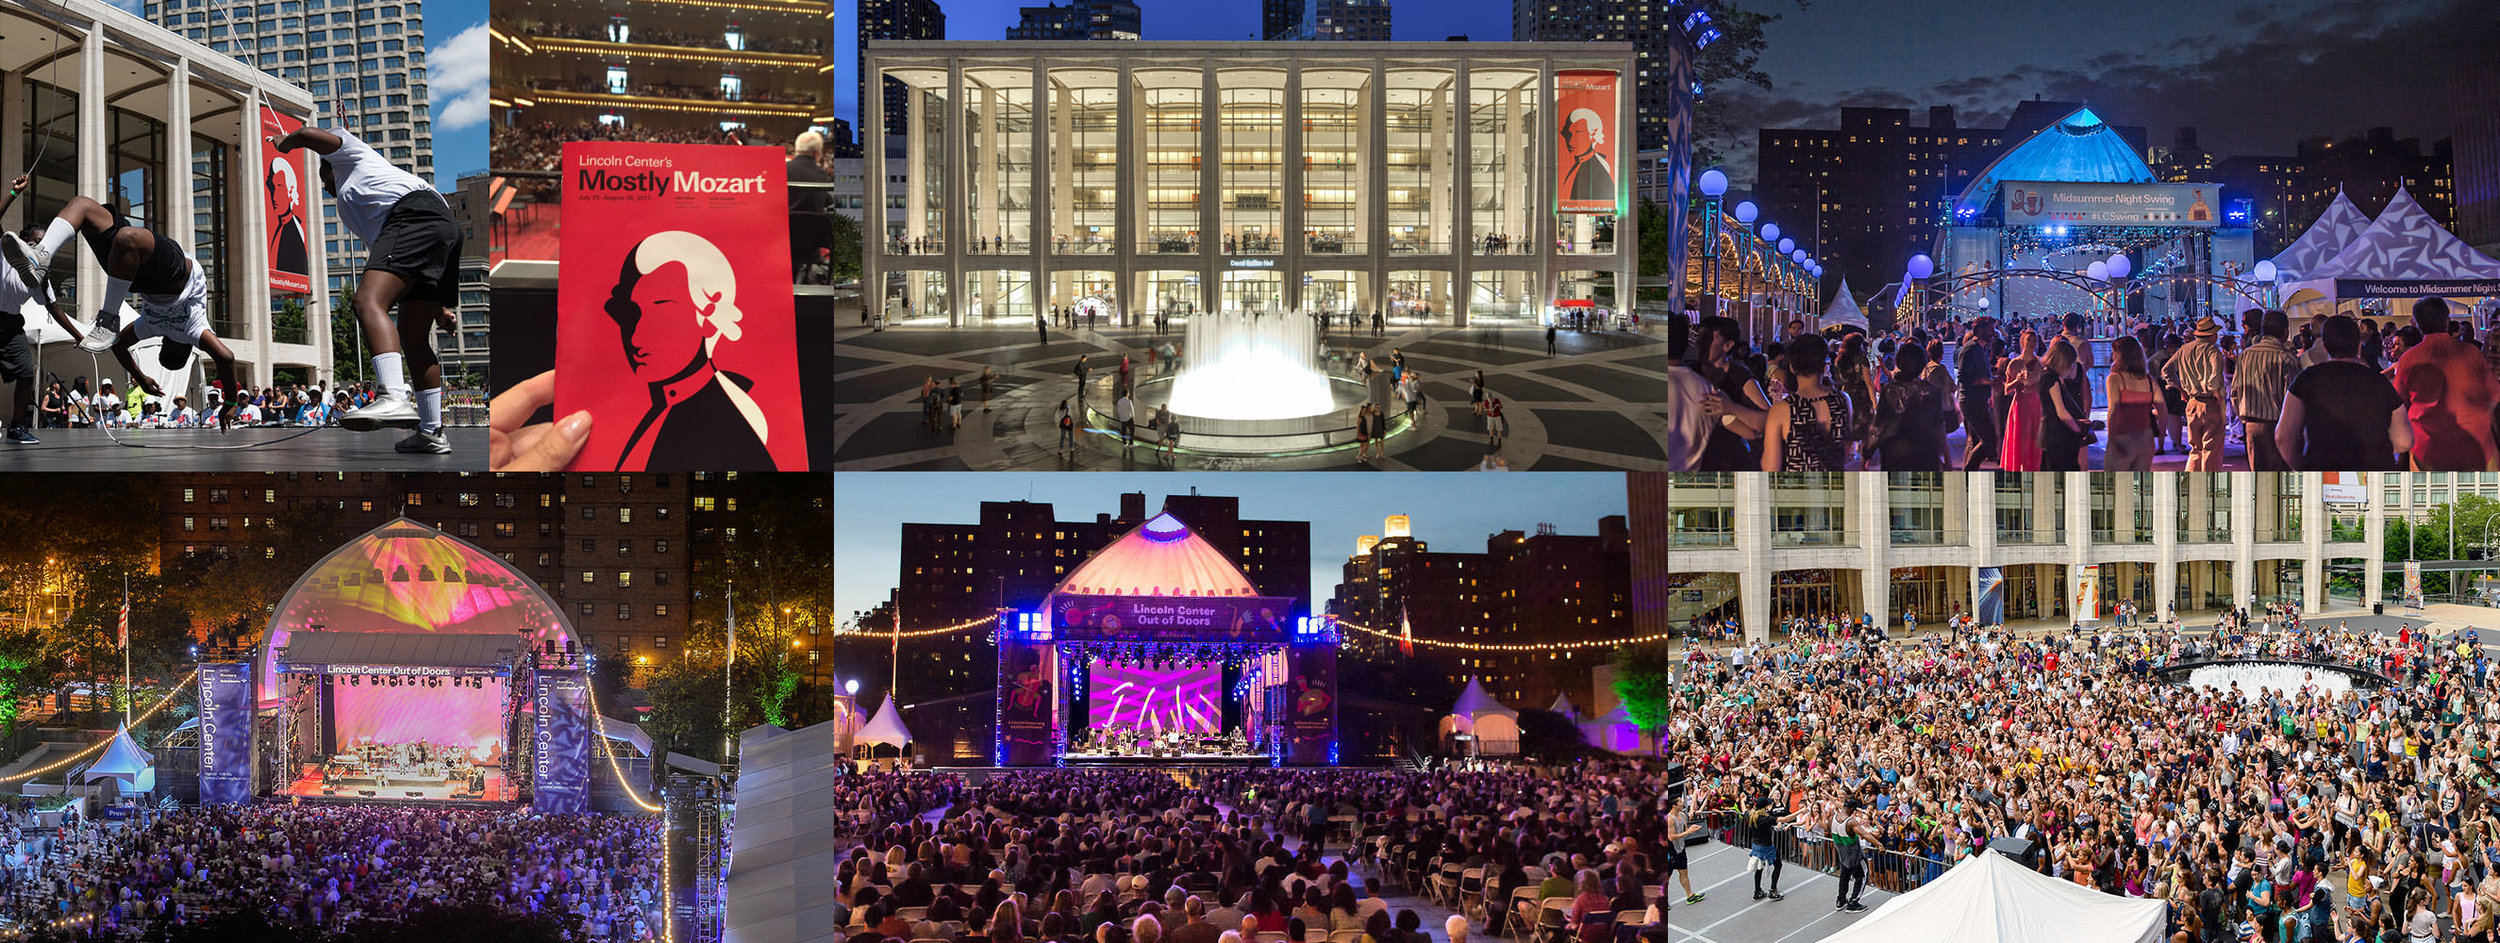 Lincoln Center's campus during festival season